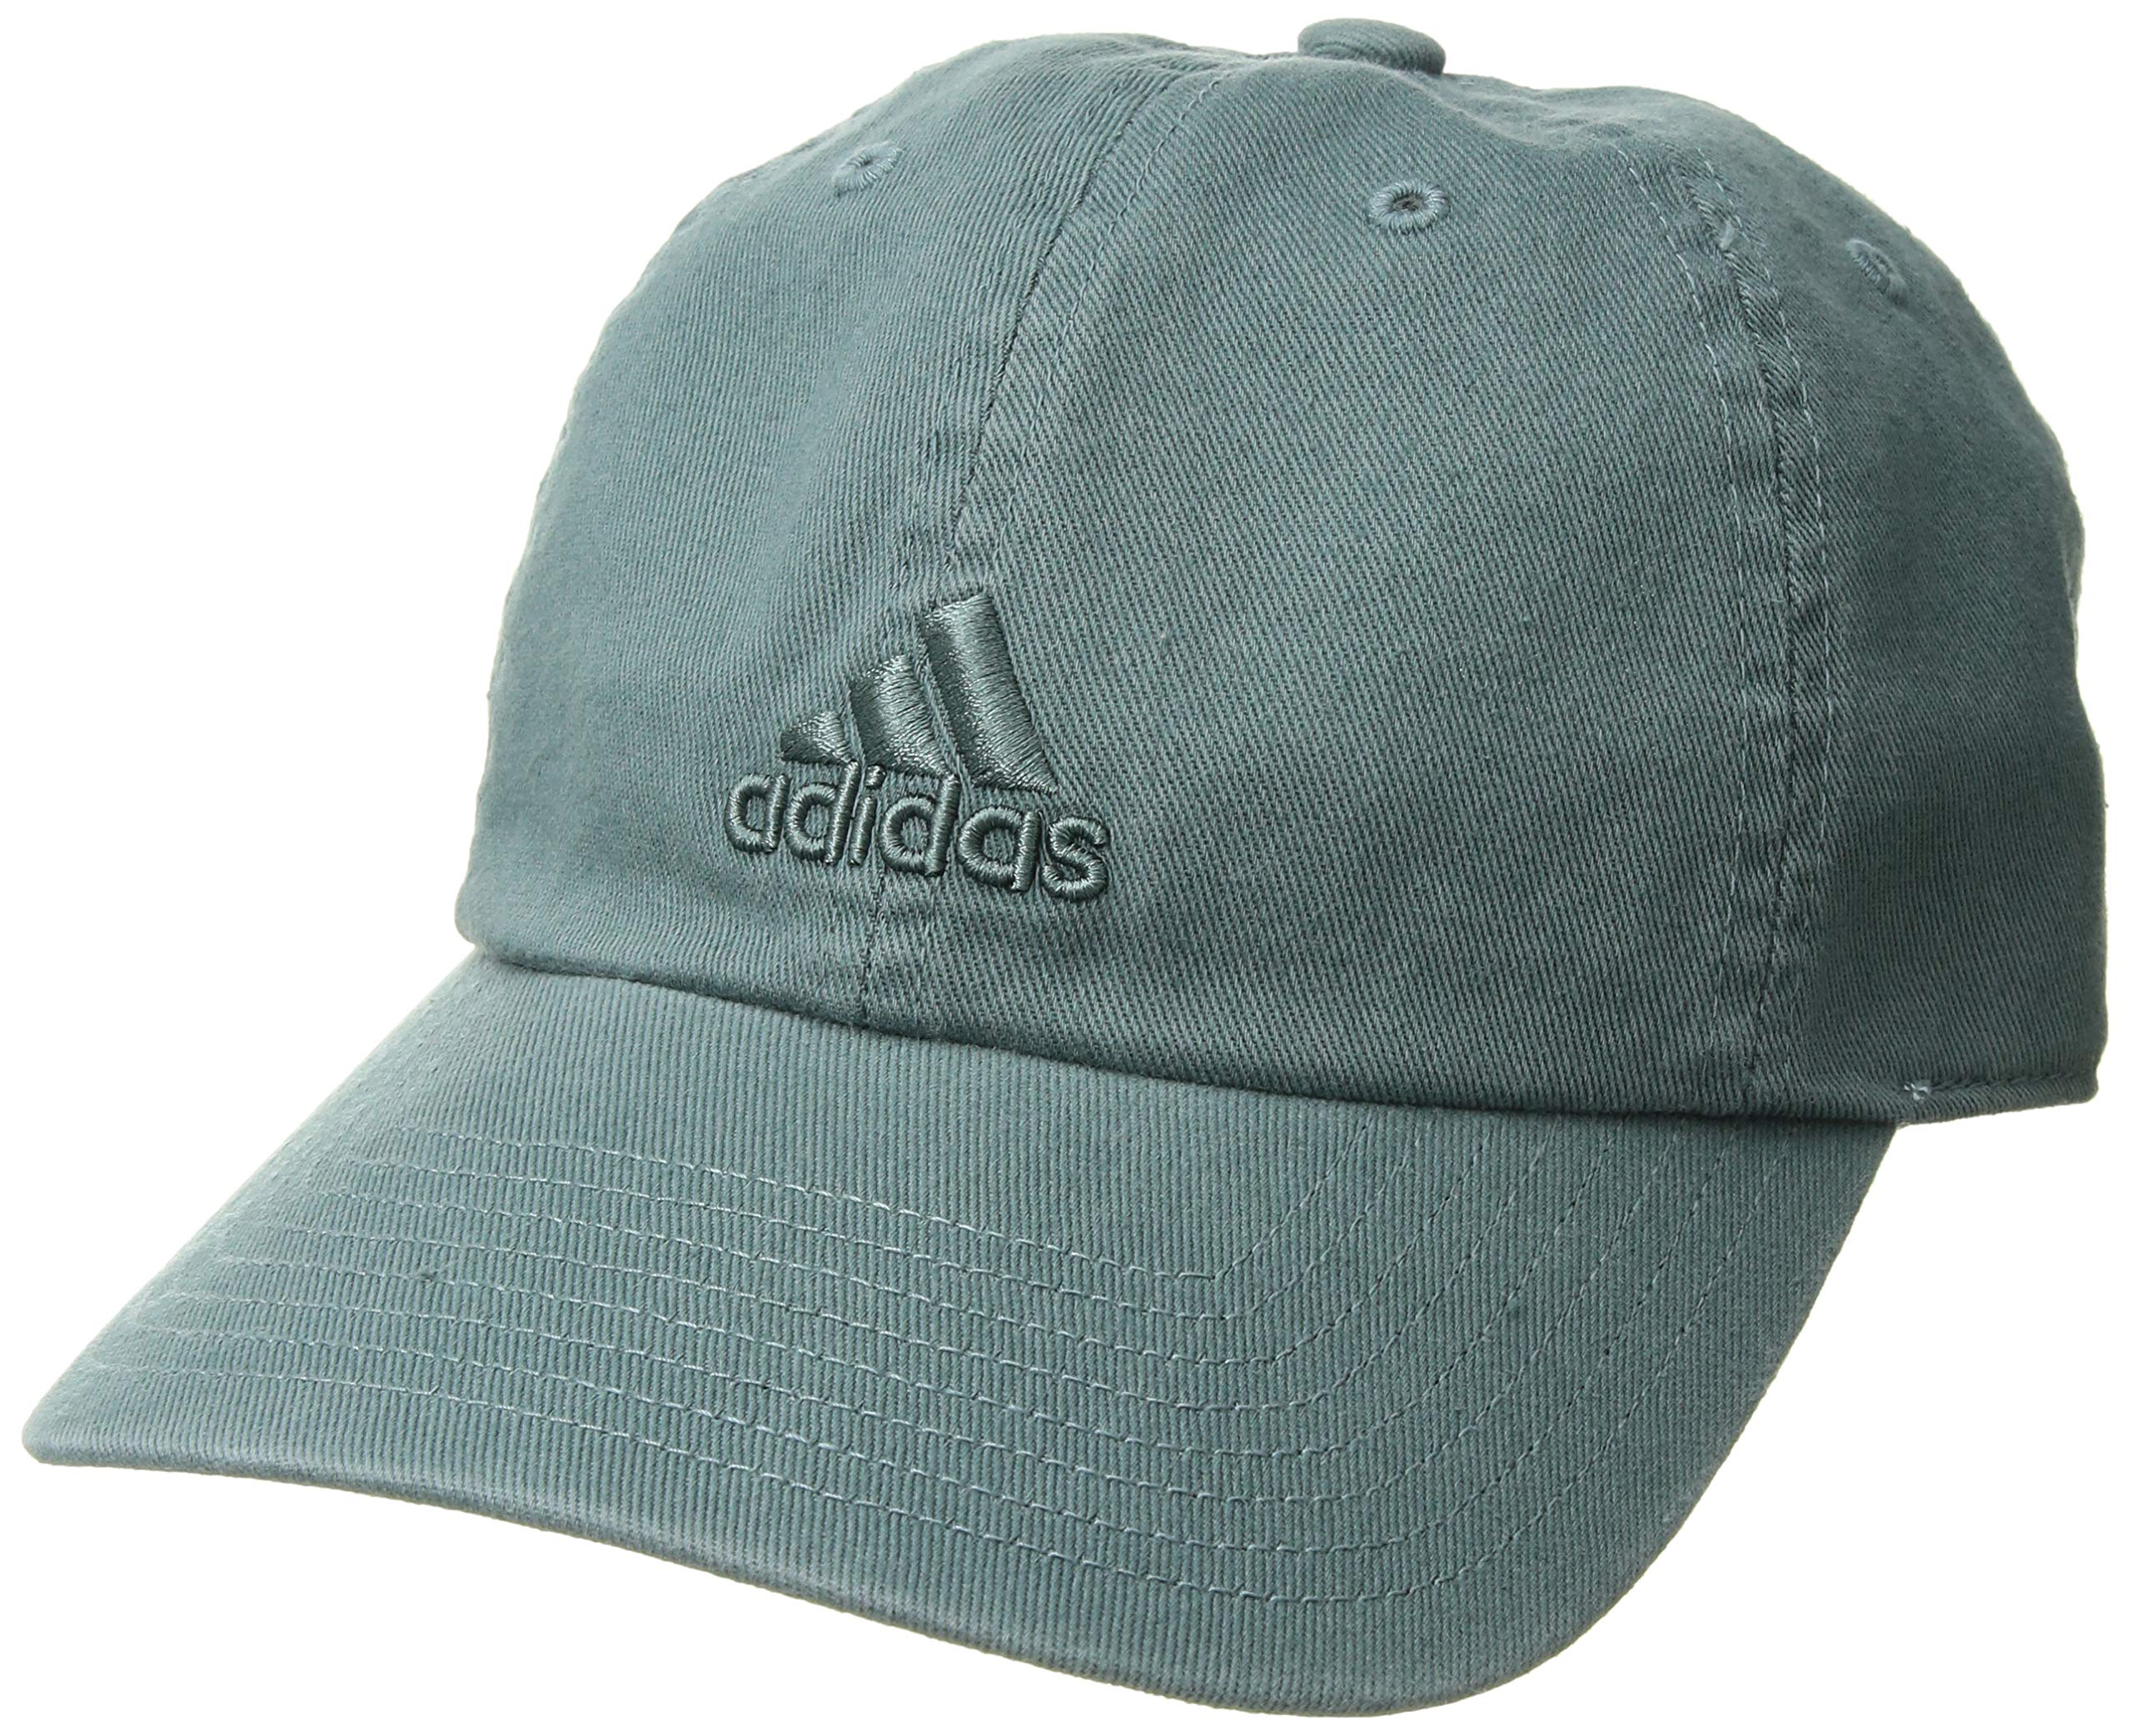 adidas Women's Saturday Relaxed Adjustable Cap, raw green, One Size